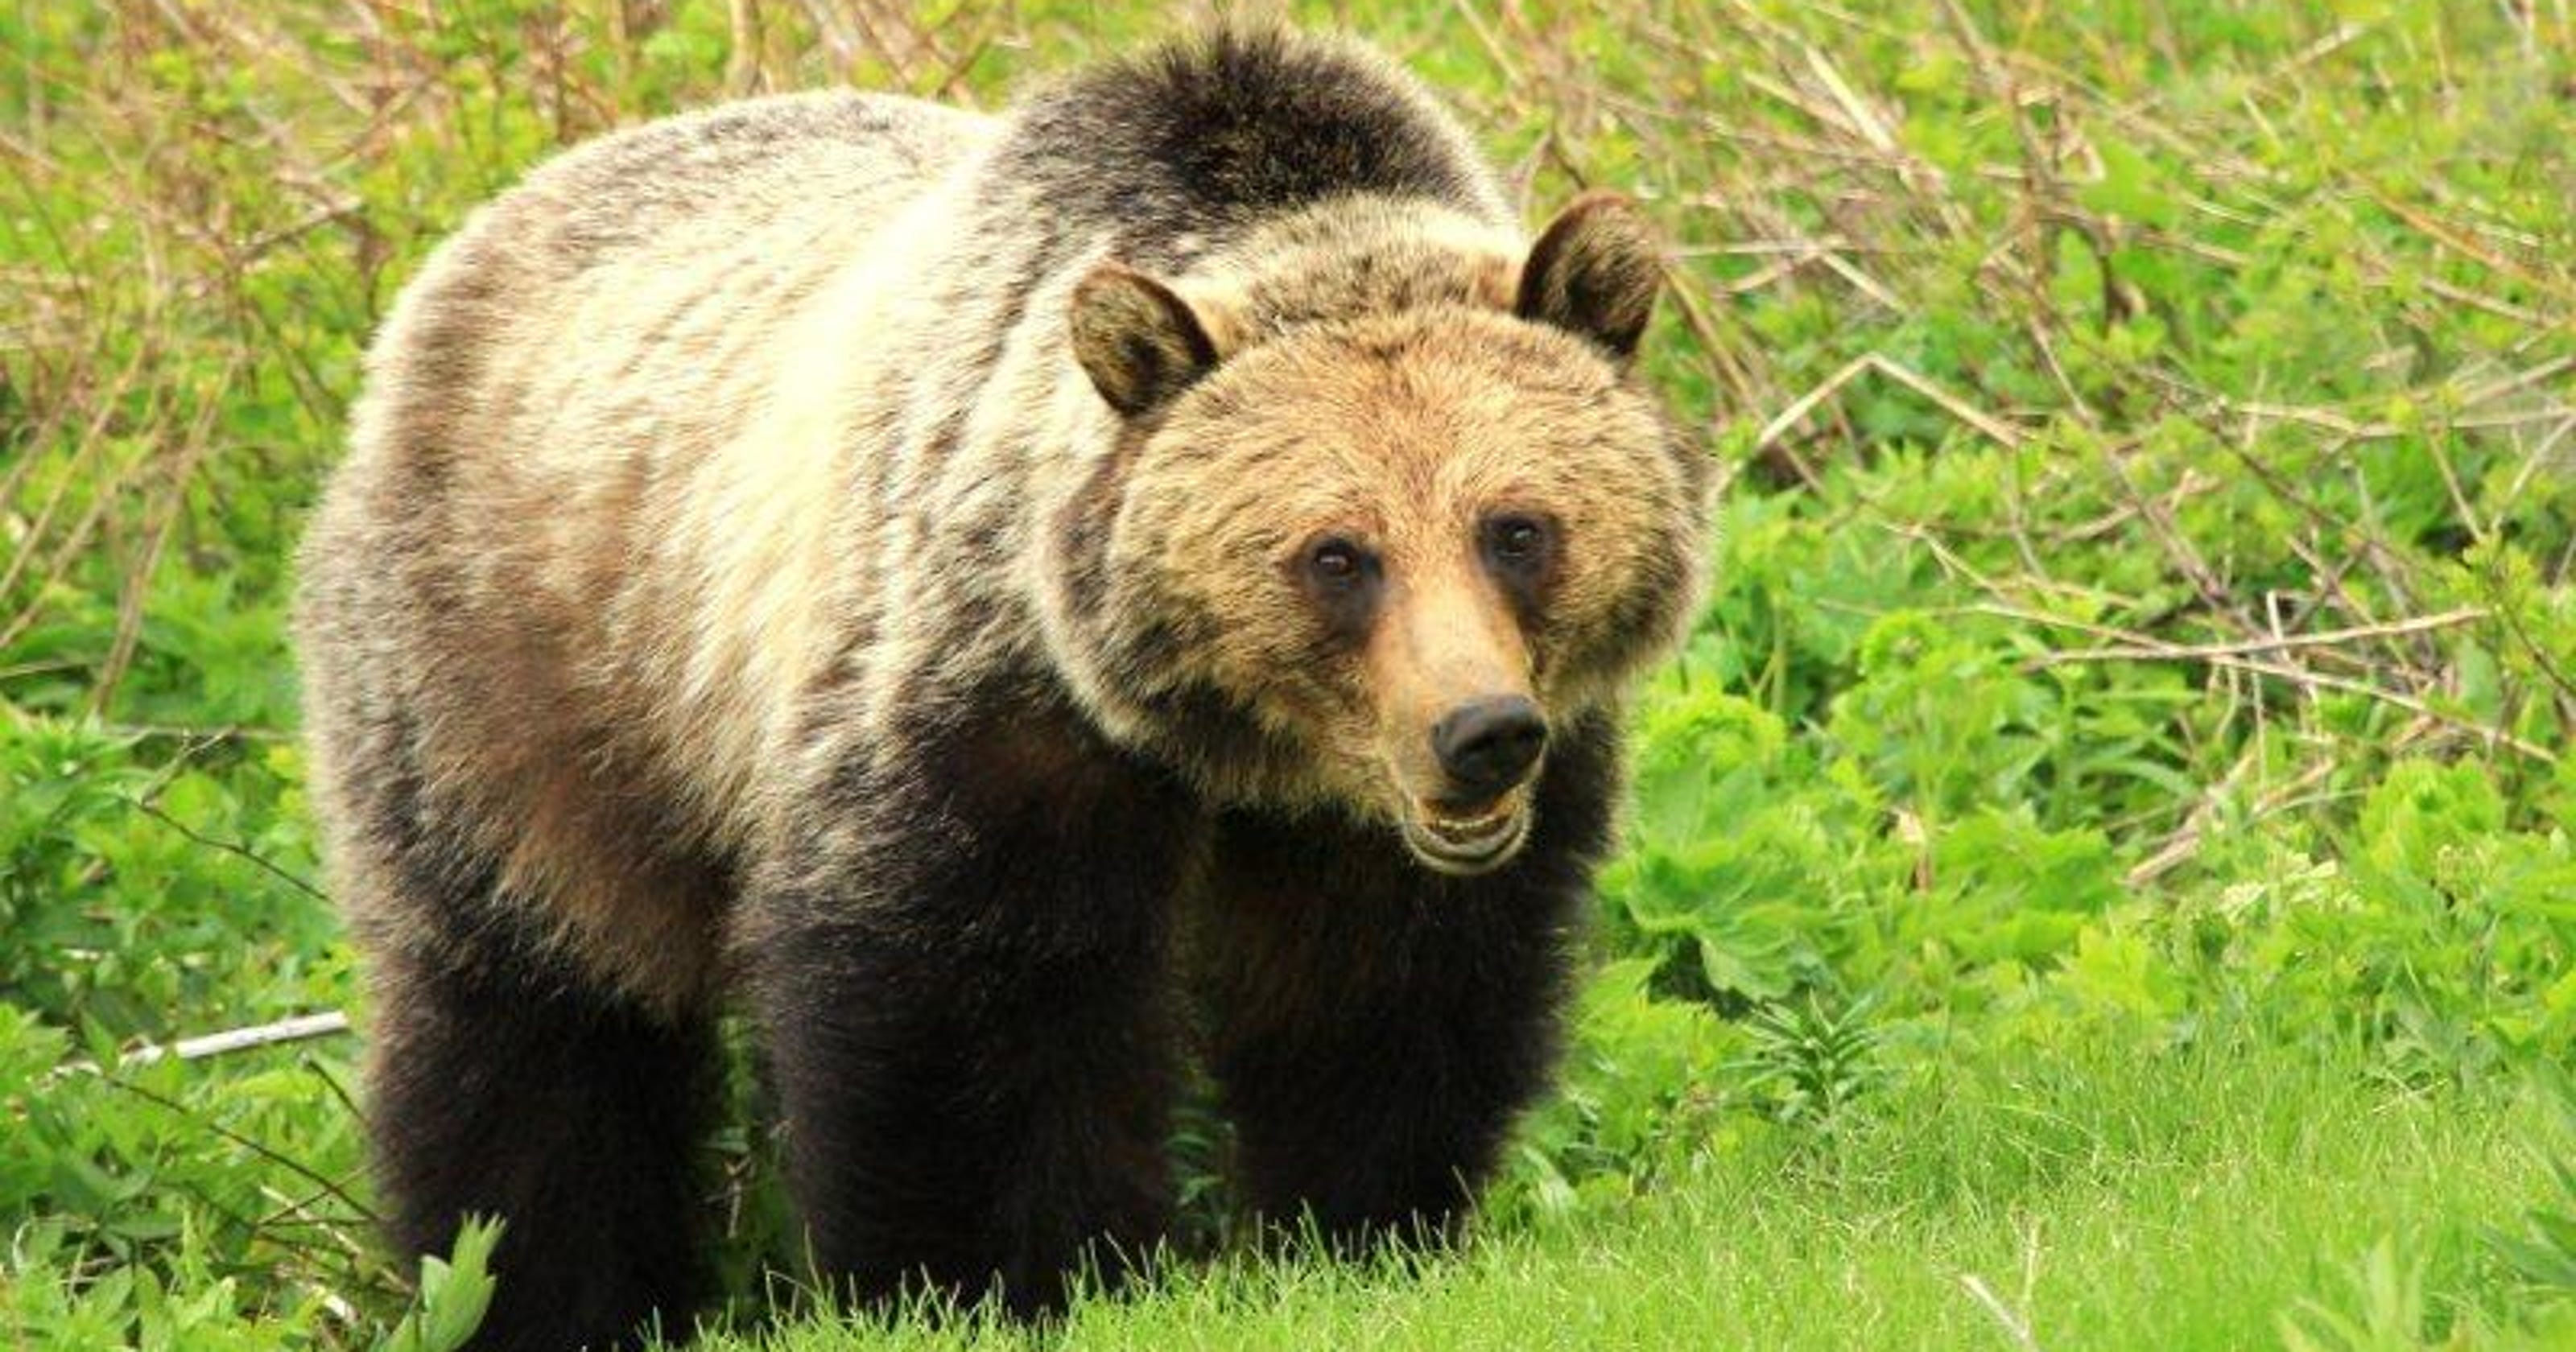 Officials Investigating After Finding Dead Grizzly